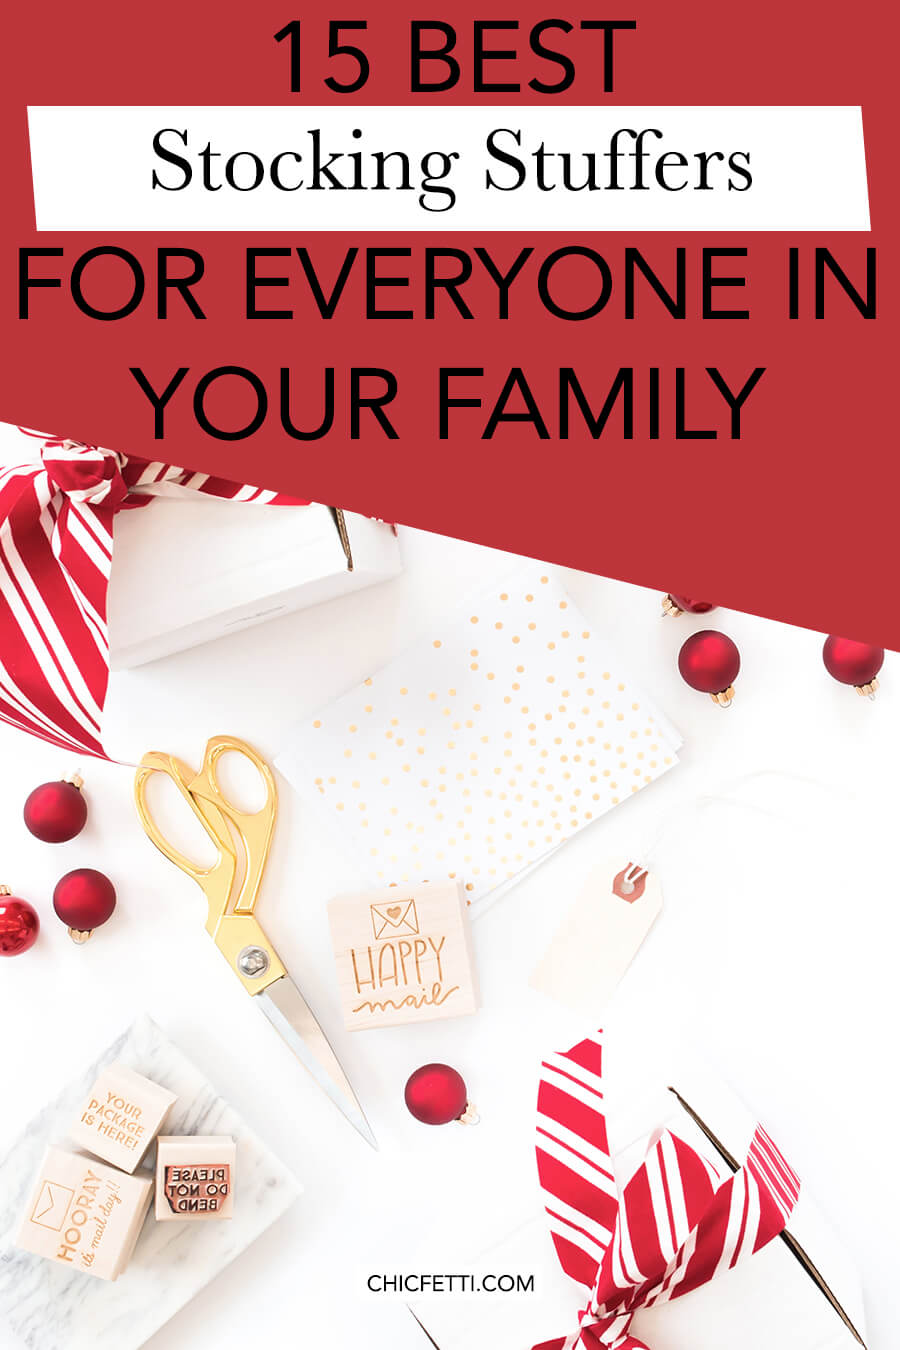 15 Best Stocking Stuffers for Everyone in Your Family - get stocking stuffer ideas for everyone in your family including cheap stocking stuffer ideas #christmas #christmasideas #stockingstuffers #stockingstufferideas #cheapstockingstuffers #giftideas